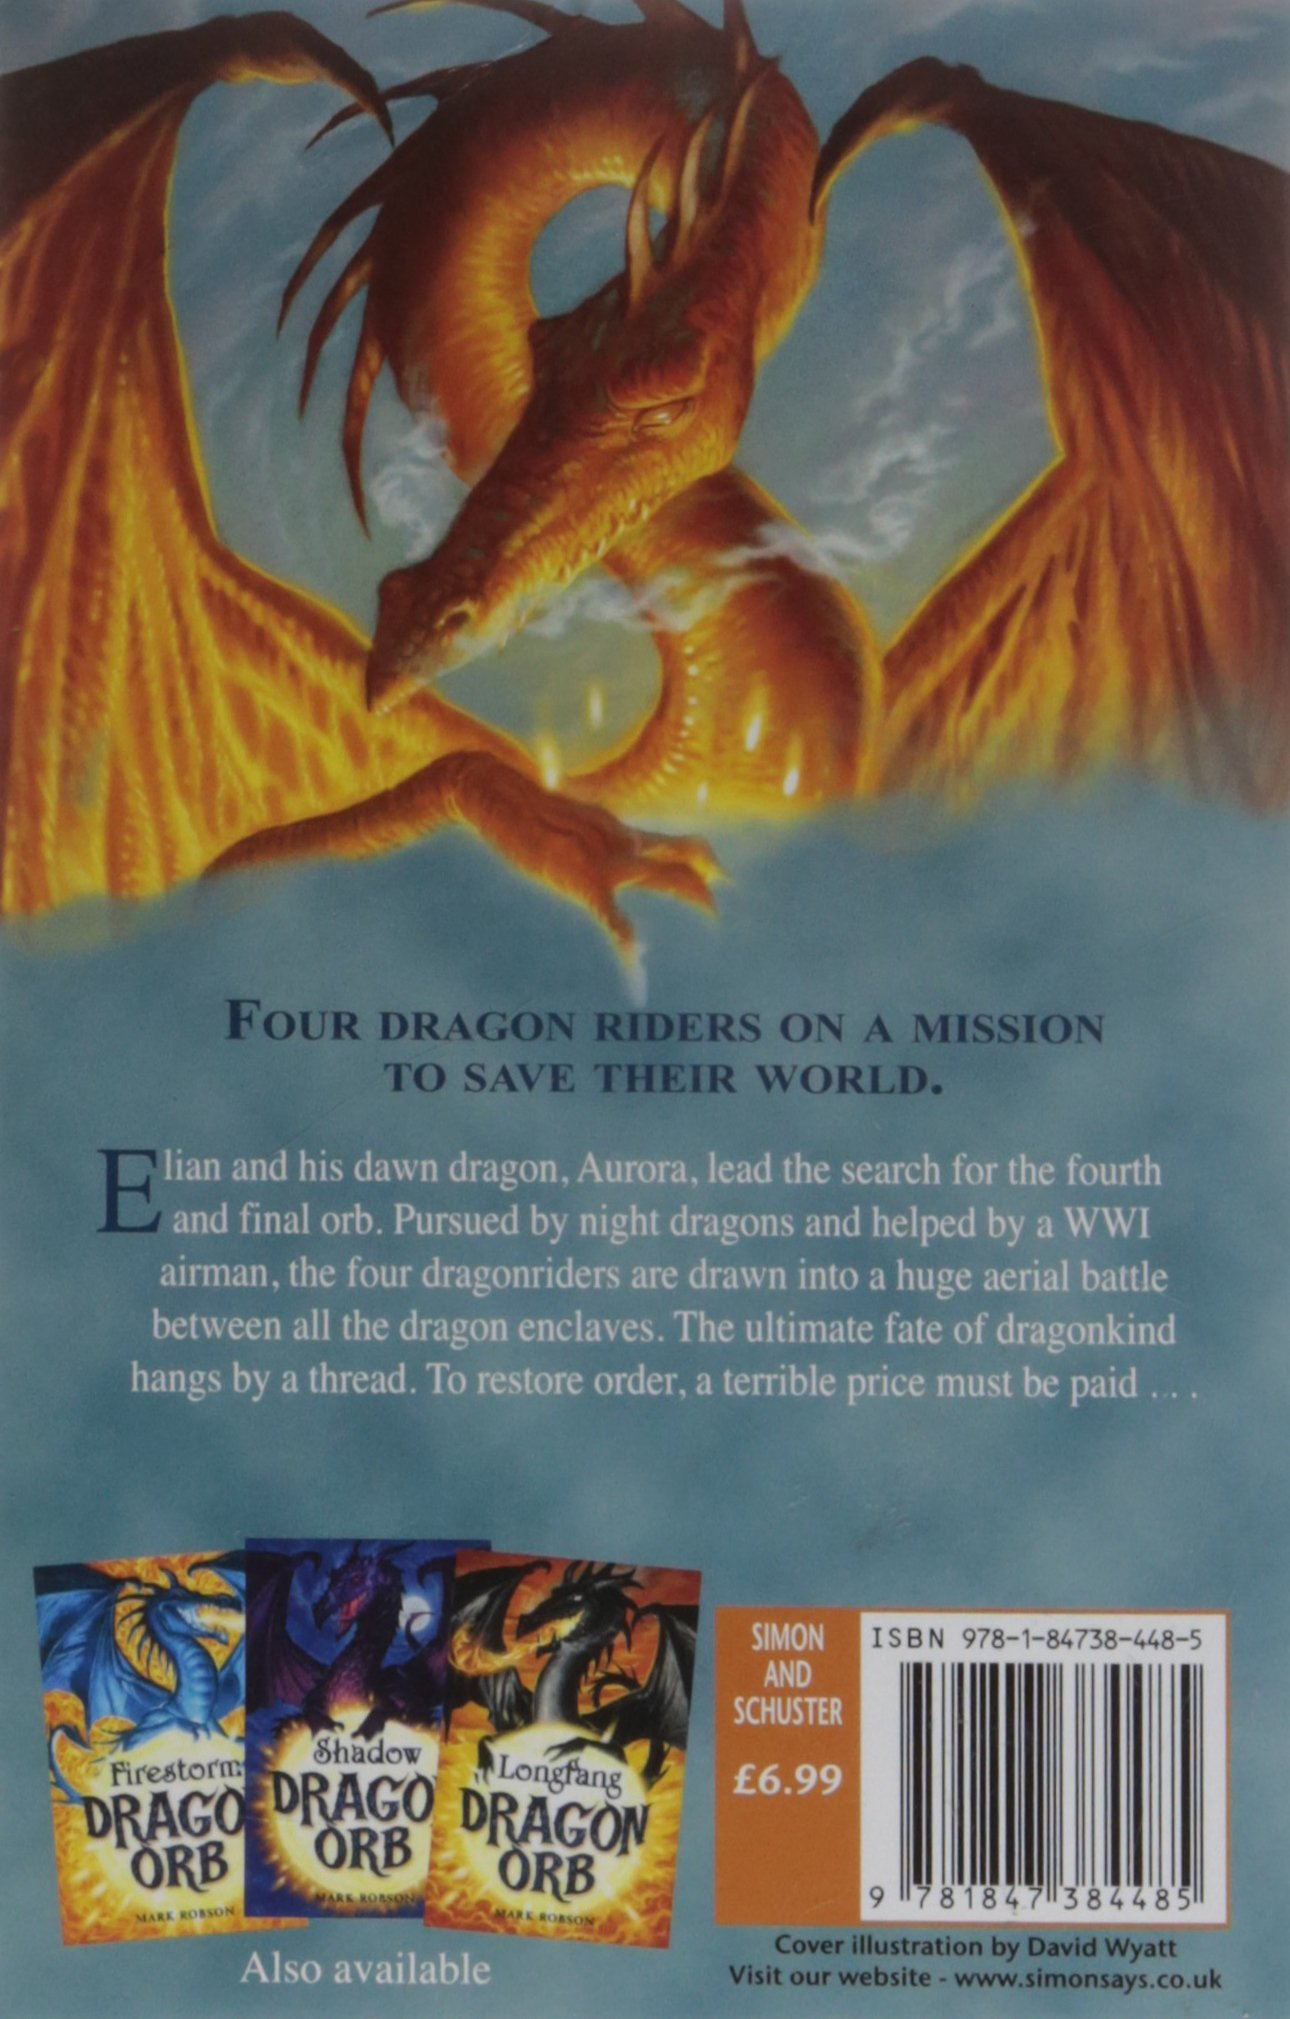 Dragon orb aurora mark robson 9781847384485 amazon books fandeluxe Ebook collections